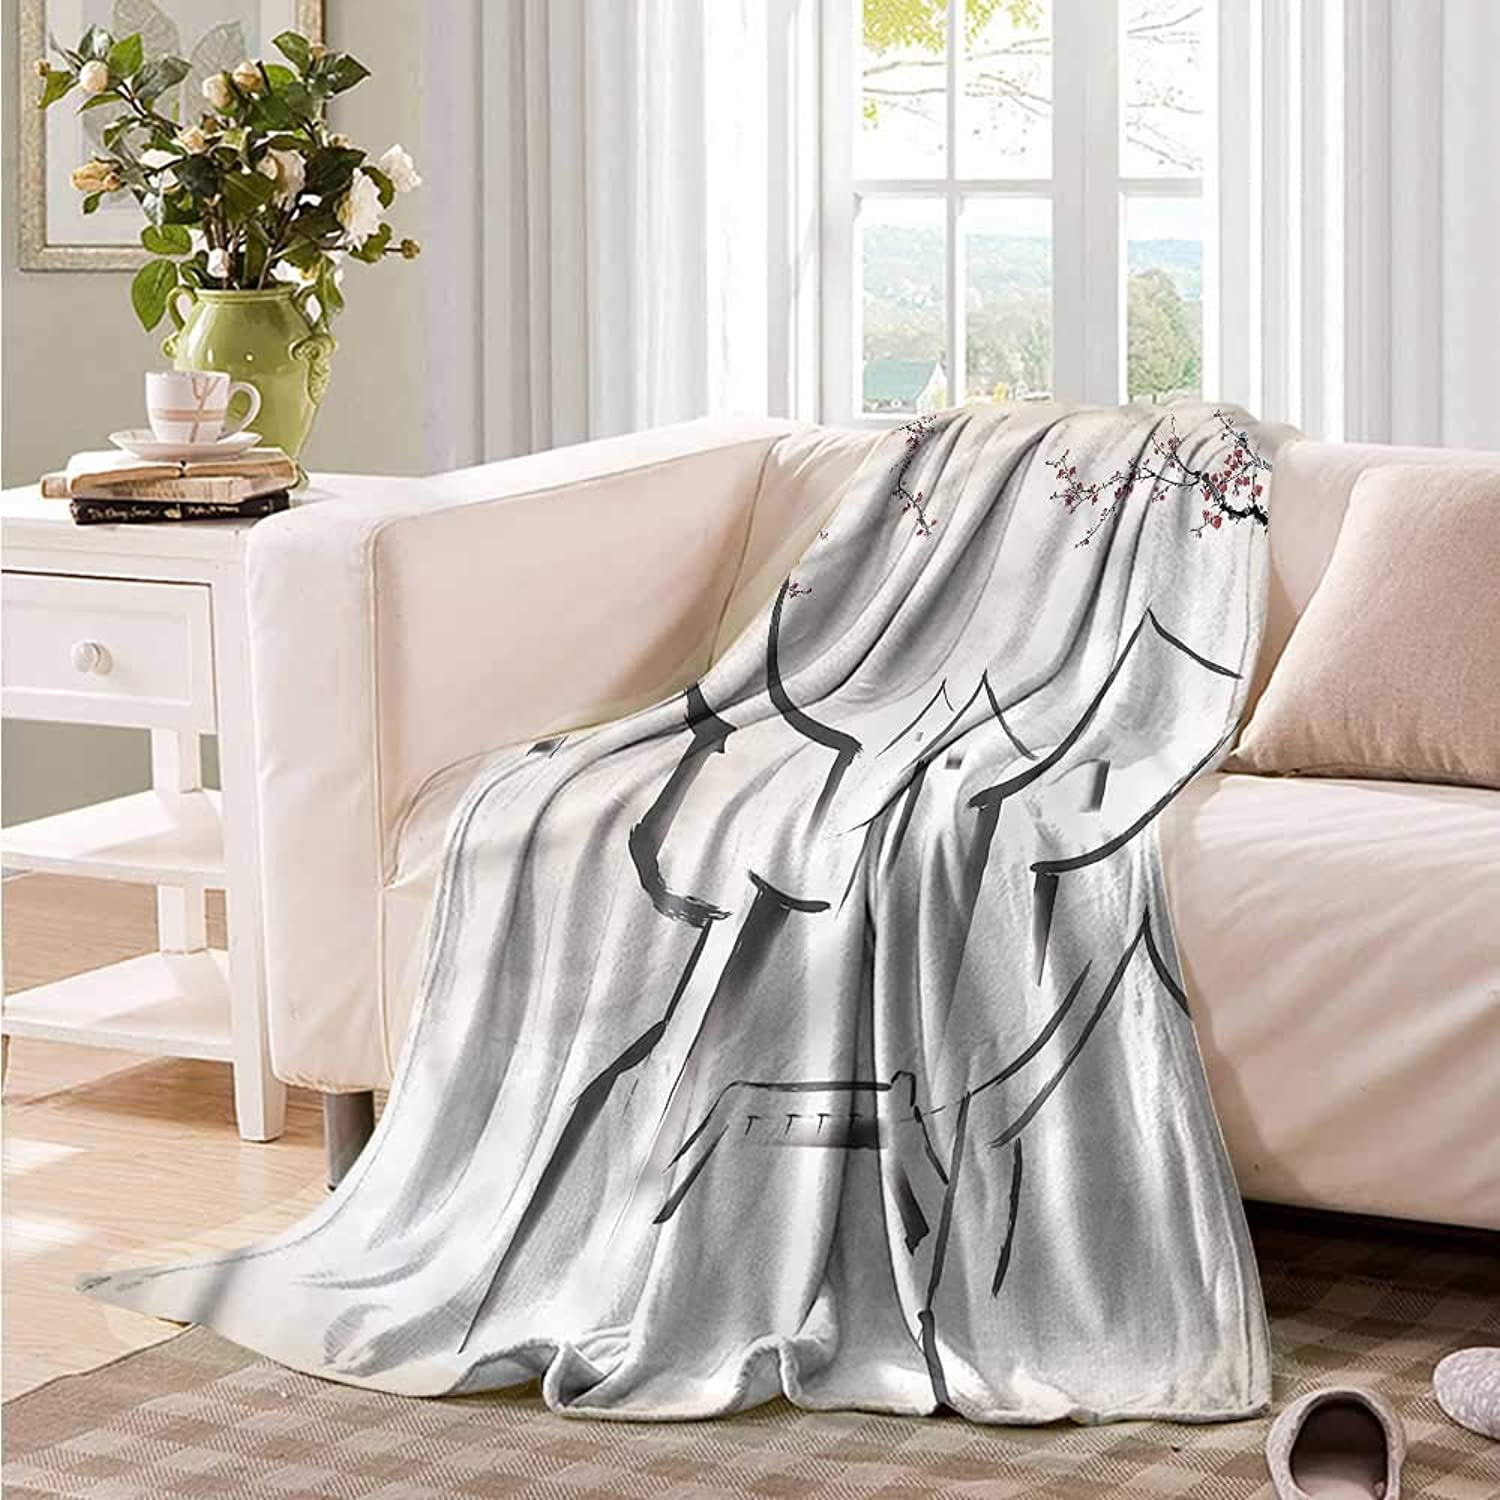 Oncegod Family Blanket Asian Sketch Houses Sakura Trees Camping Throw,Office wrap 60  W x 51  L